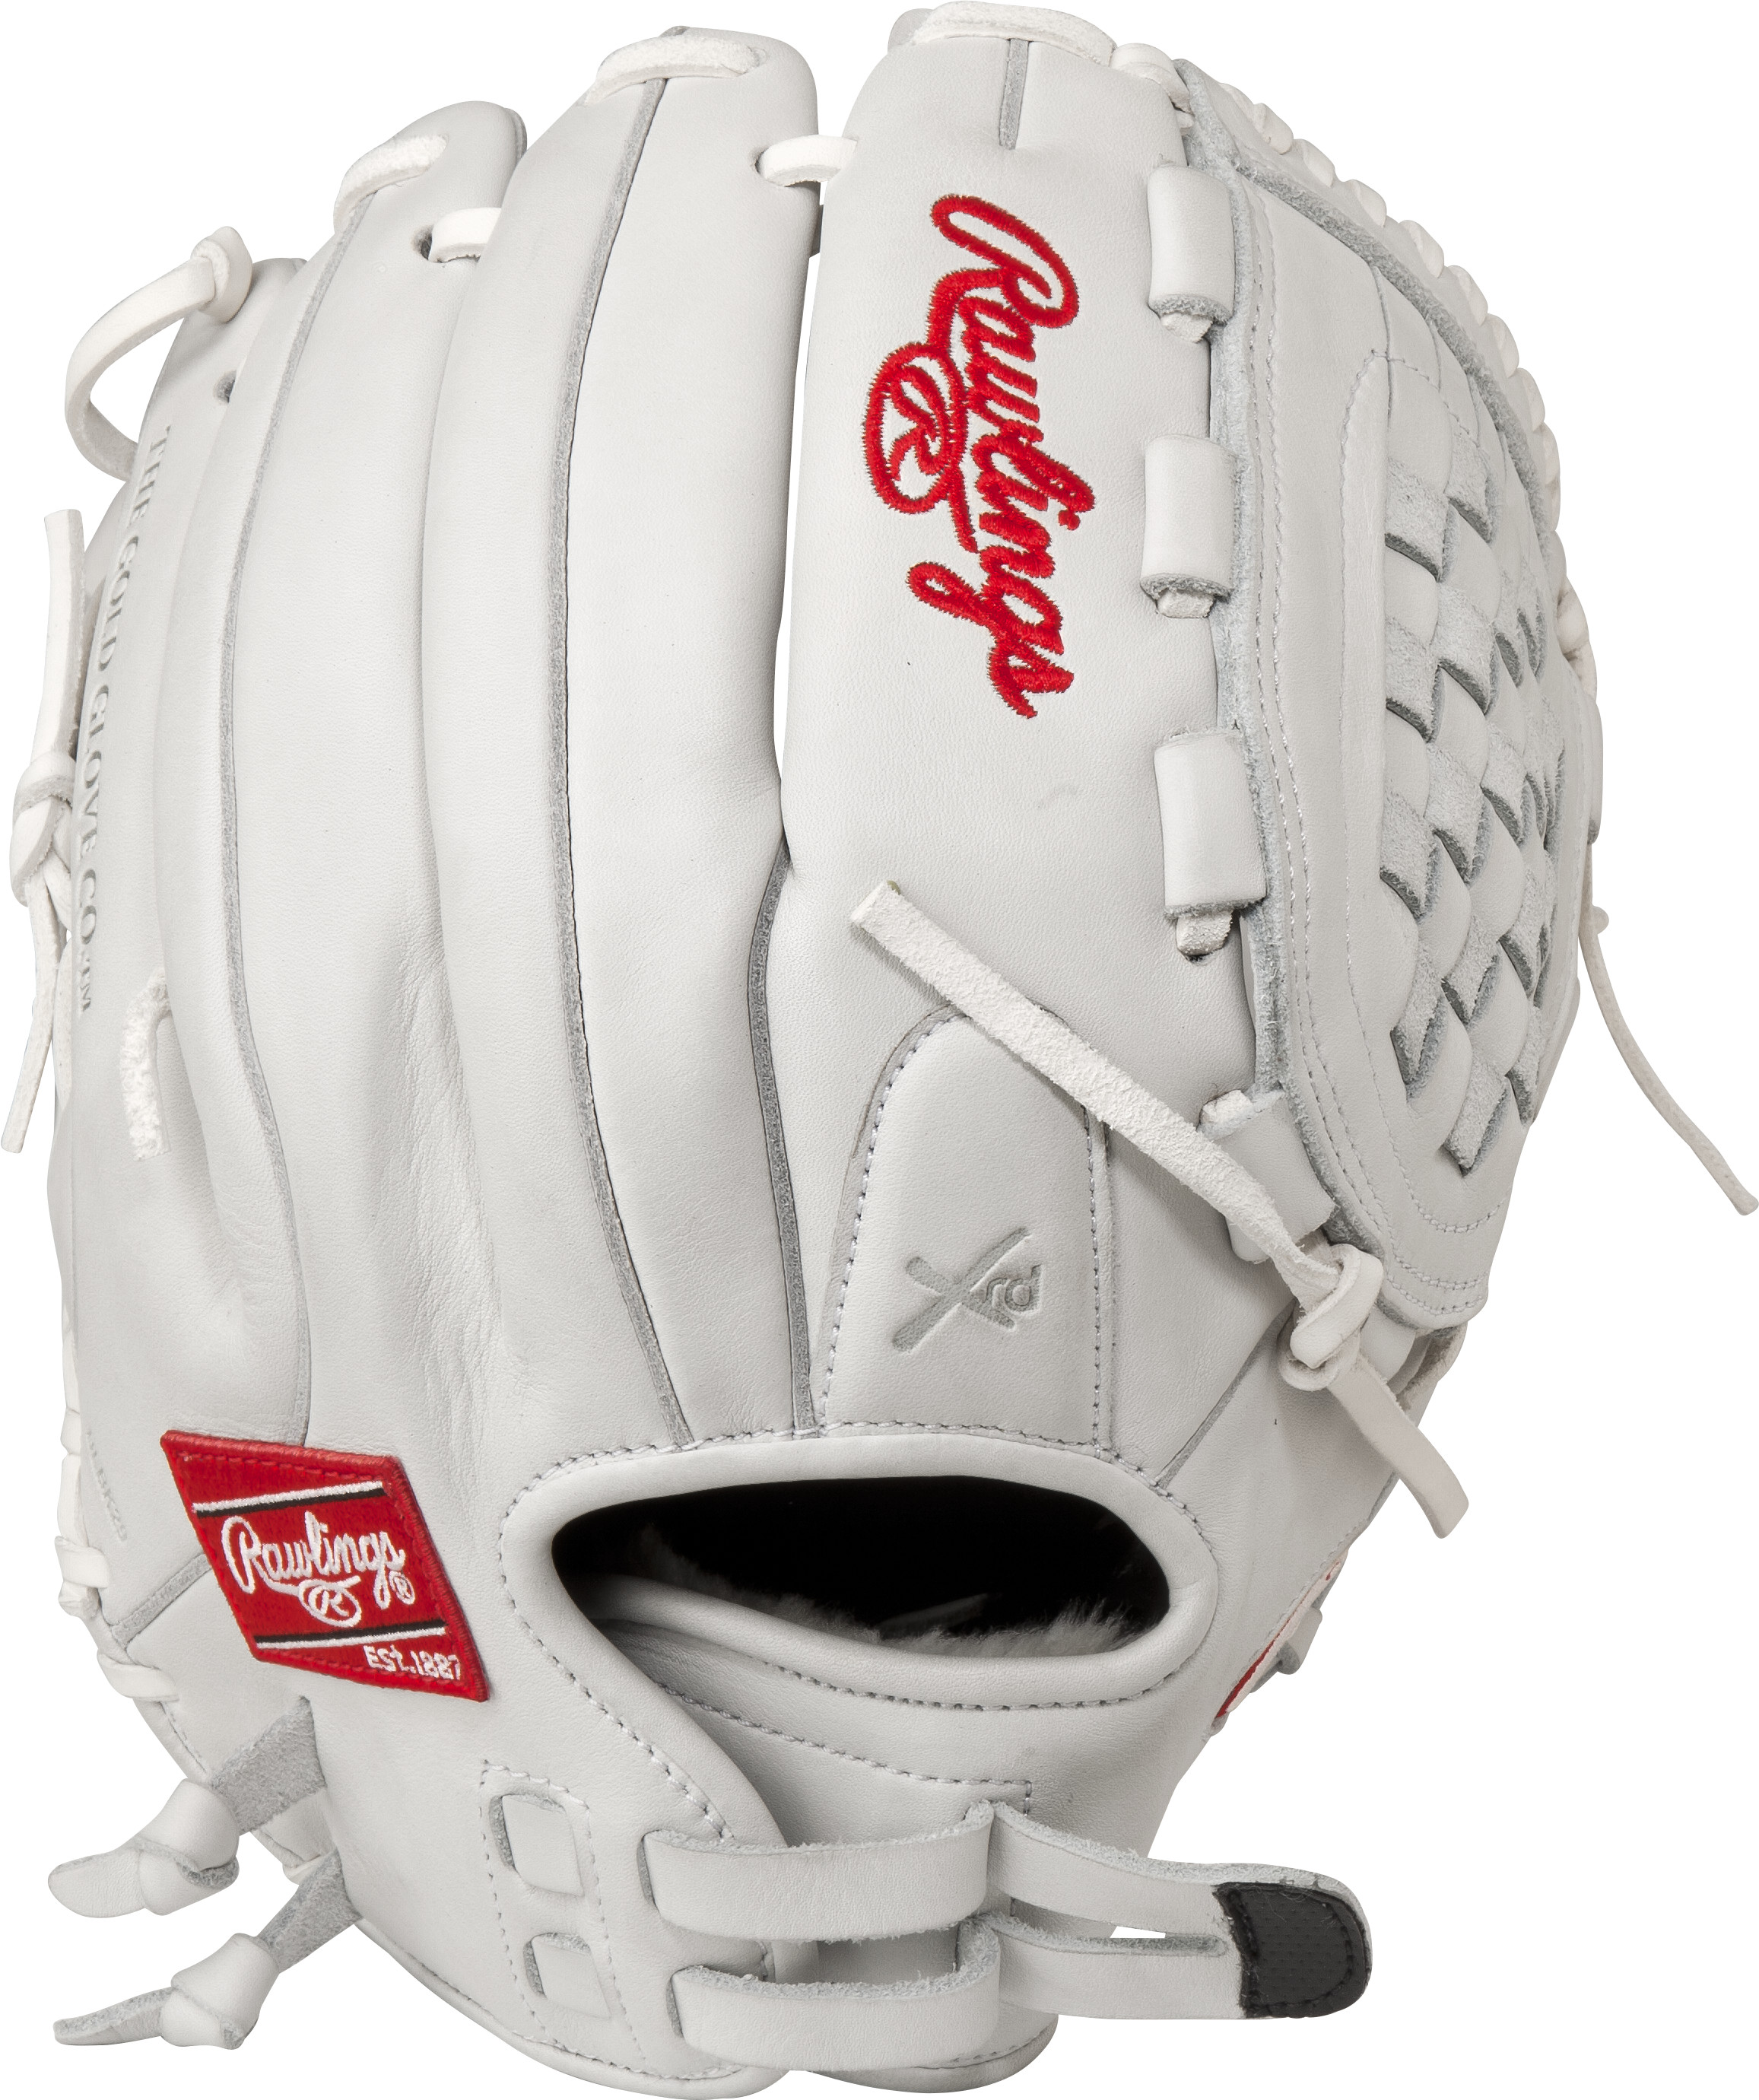 http://www.bestbatdeals.com/images/gloves/rawlings/RLA125KR_back.jpg